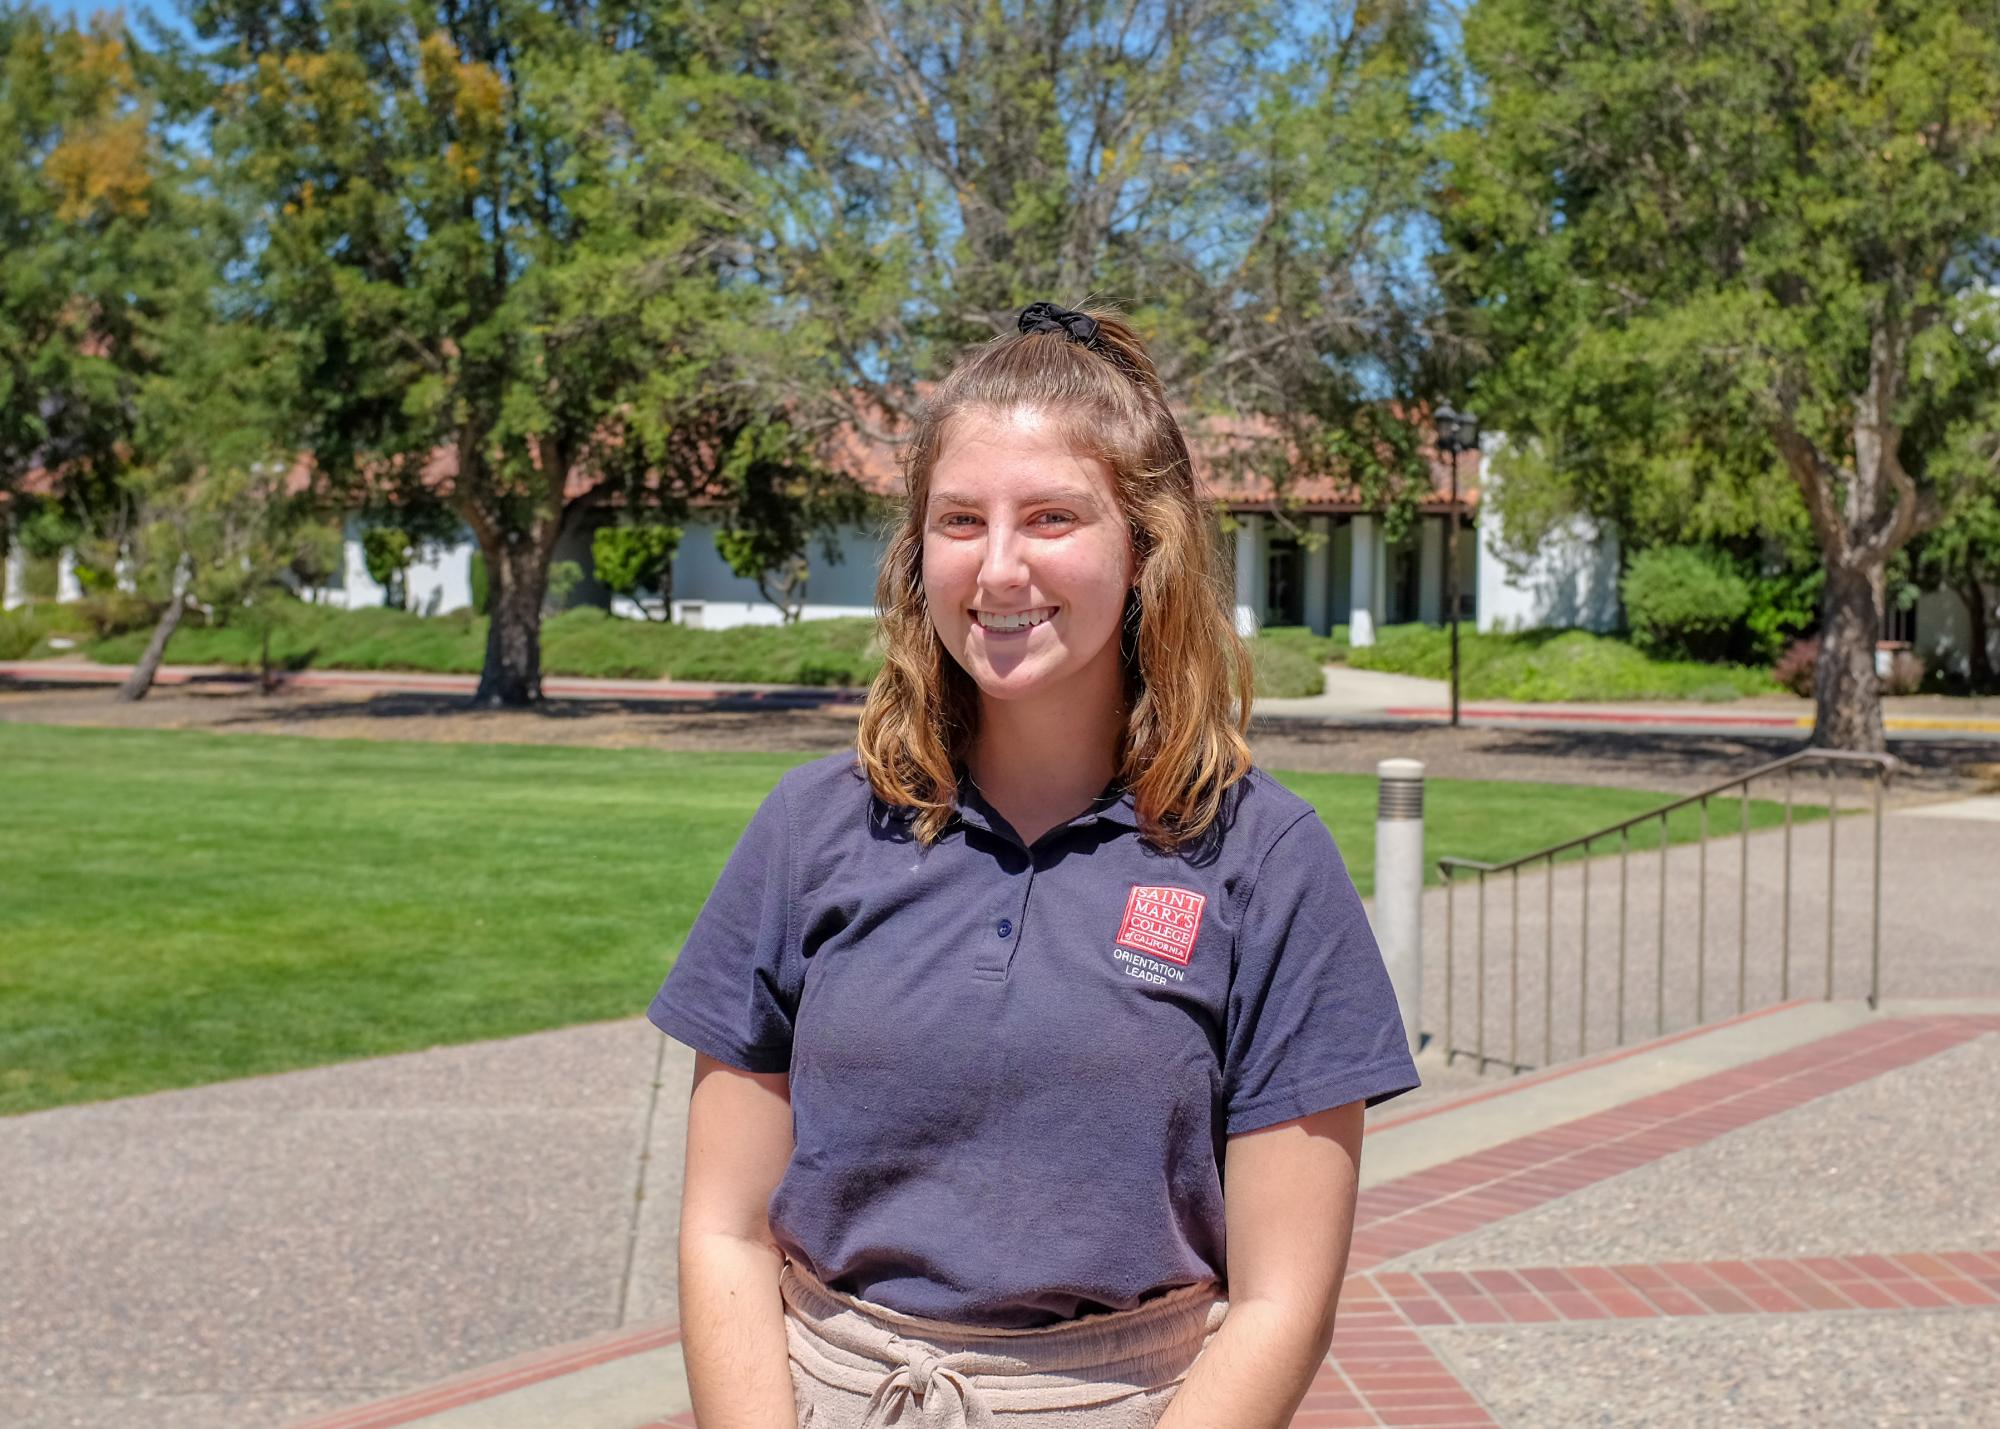 What's up! My name is Natalie Zander and I'm an English major/Psych minor from Redlands CA! In addition to being an Orientation Leader, I'm also a student ambassador! Can't wait to meet y'all, Peace and Love!